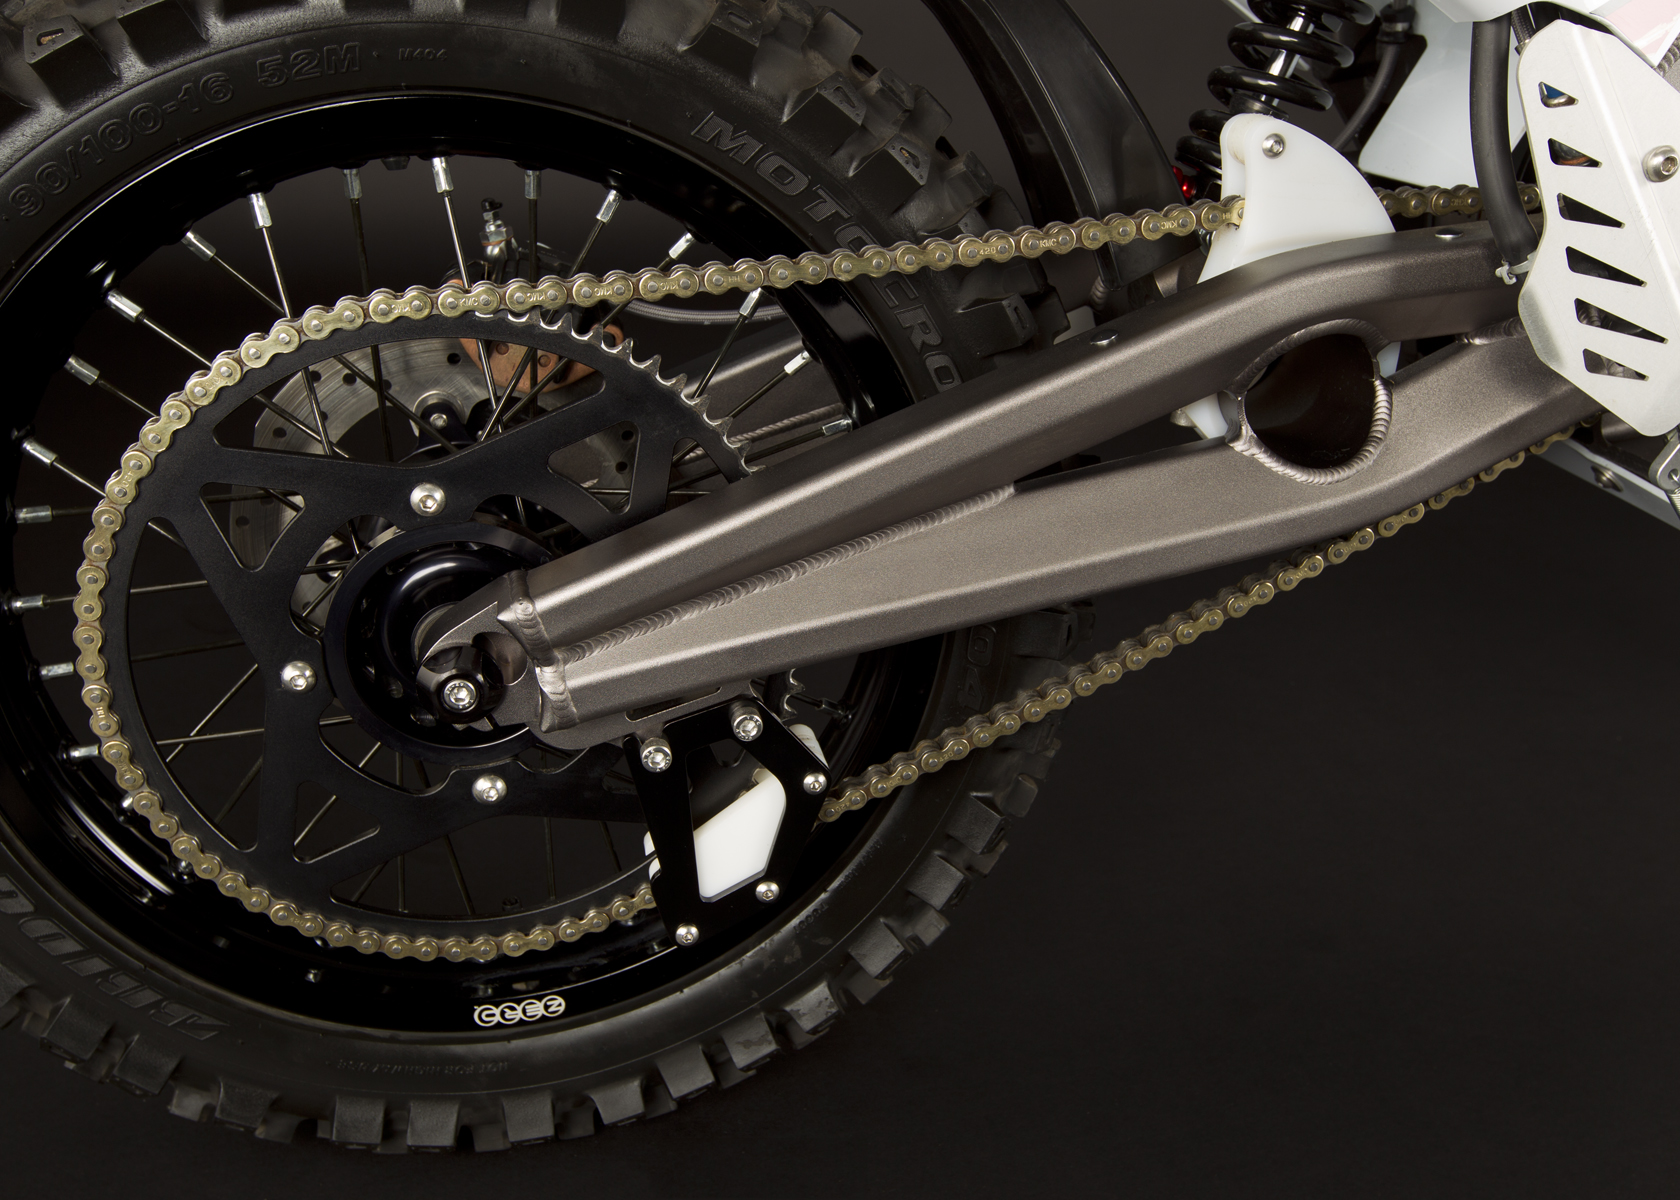 '.2011 Zero MX Electric Motorcycle: Swingarm.'